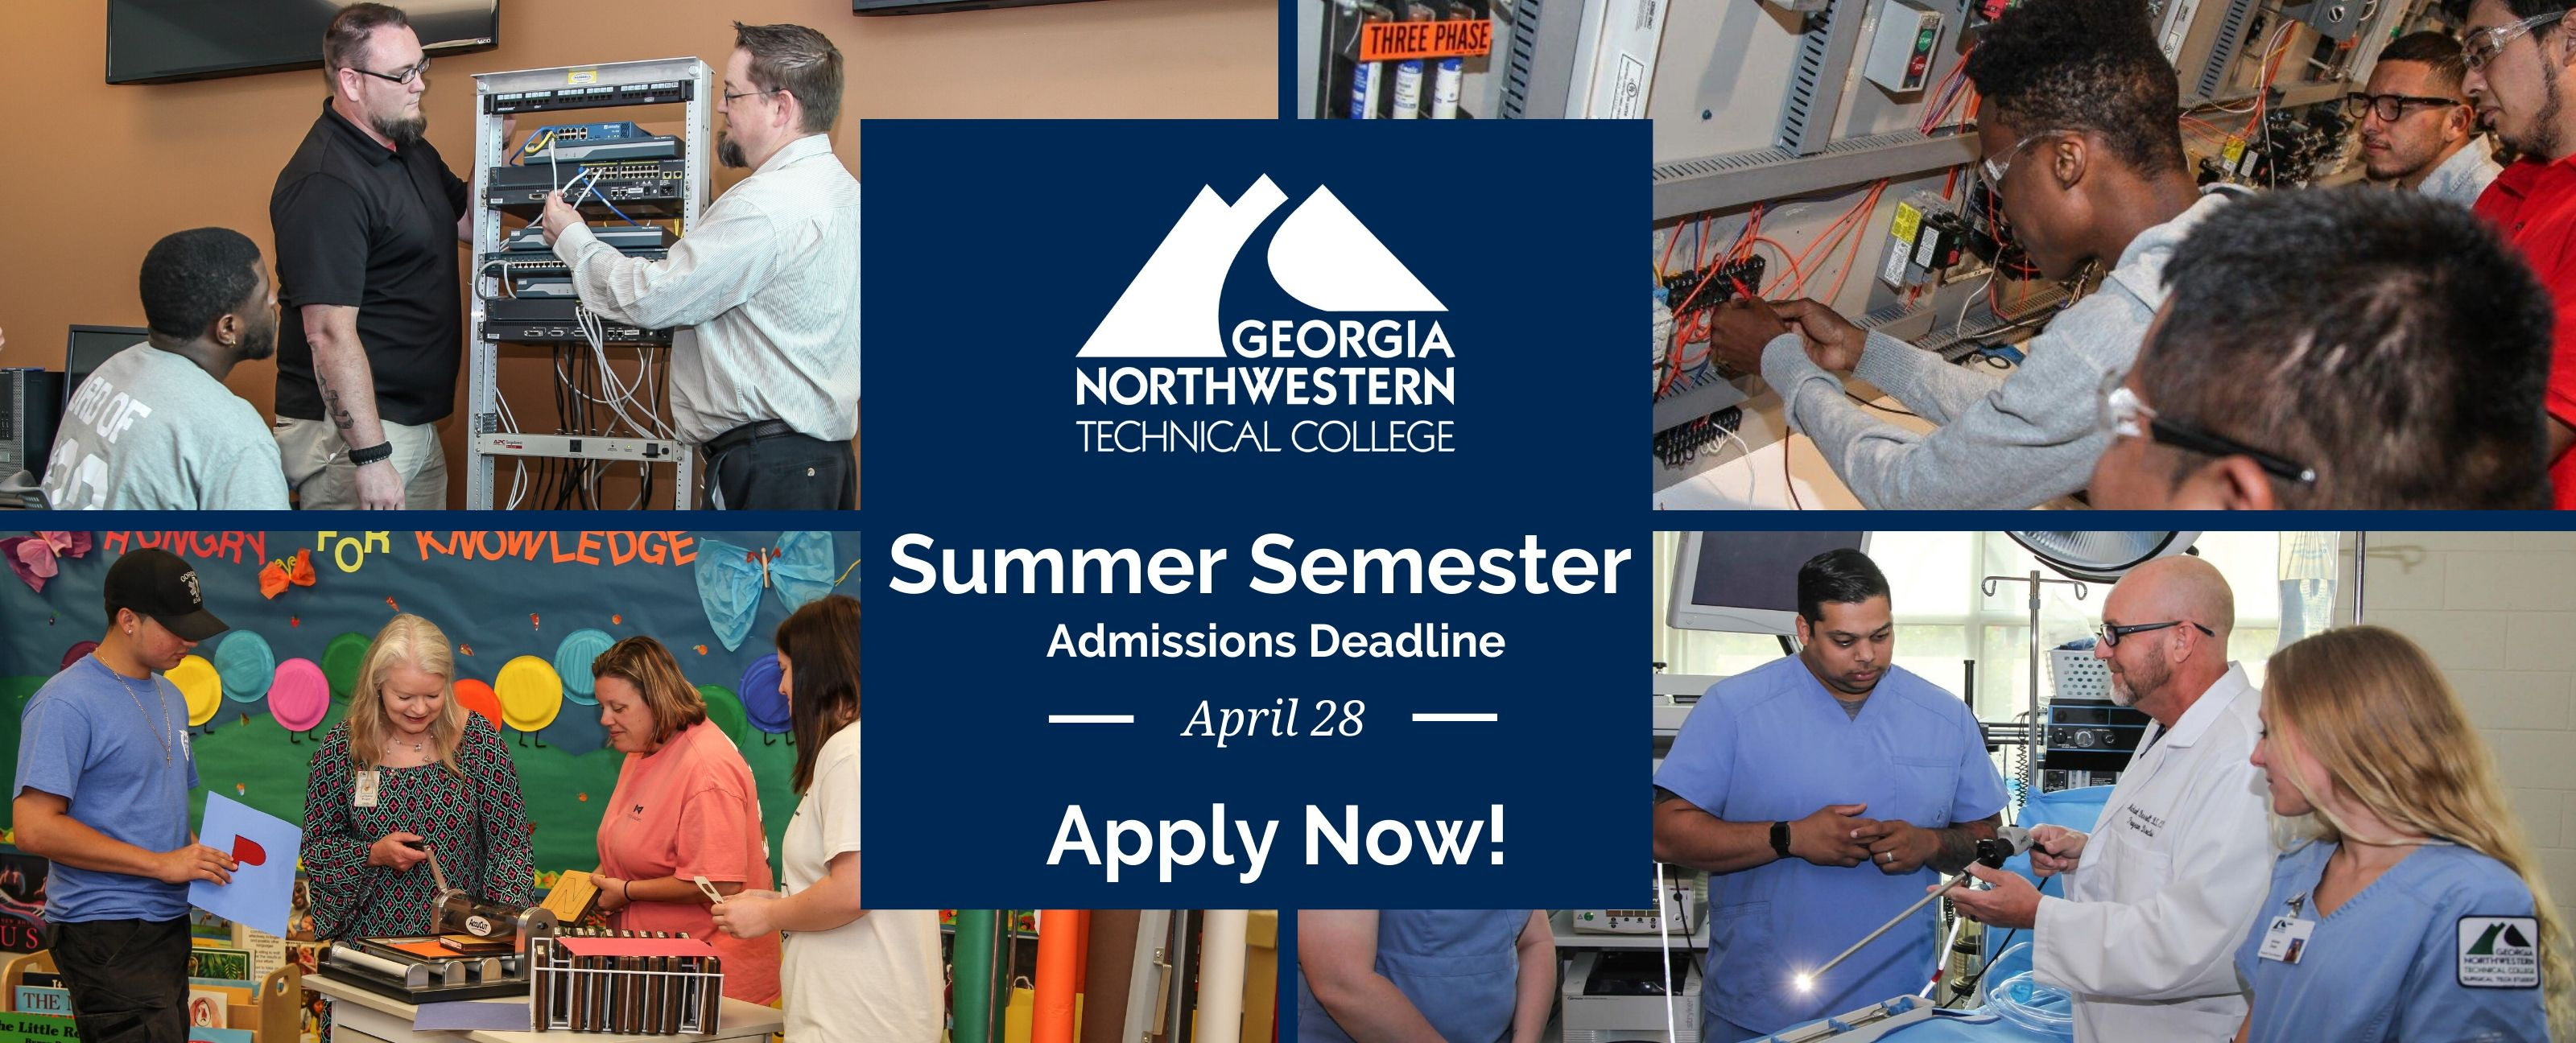 Apply Now! Summer Semester Admissions Deadline is April 28